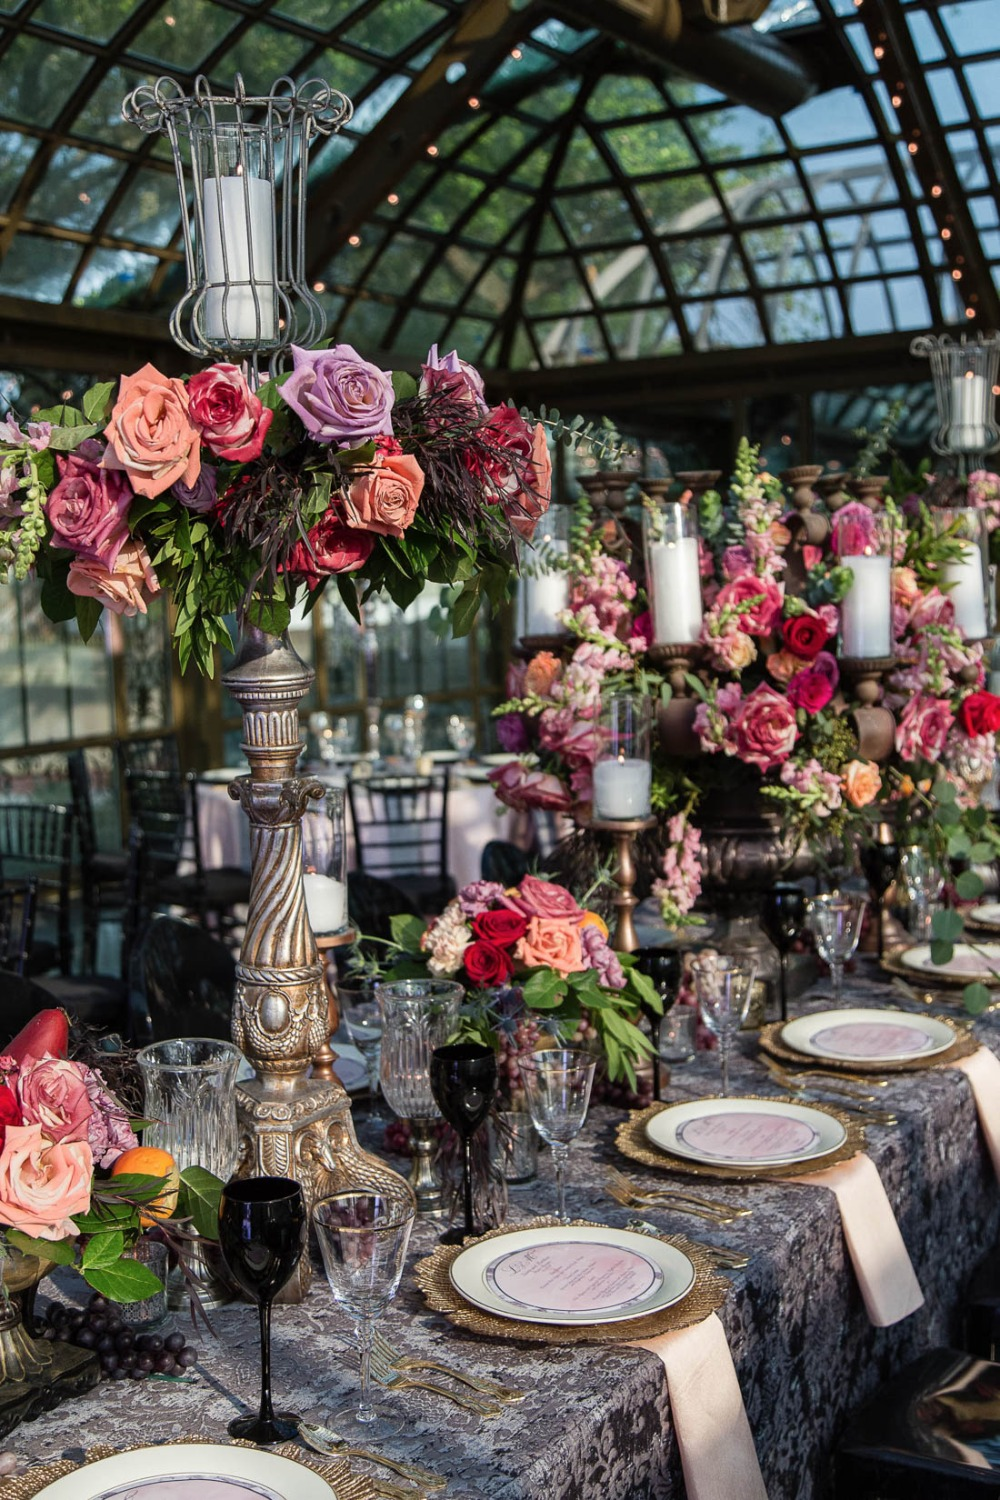 Tall and elegant centerpieces